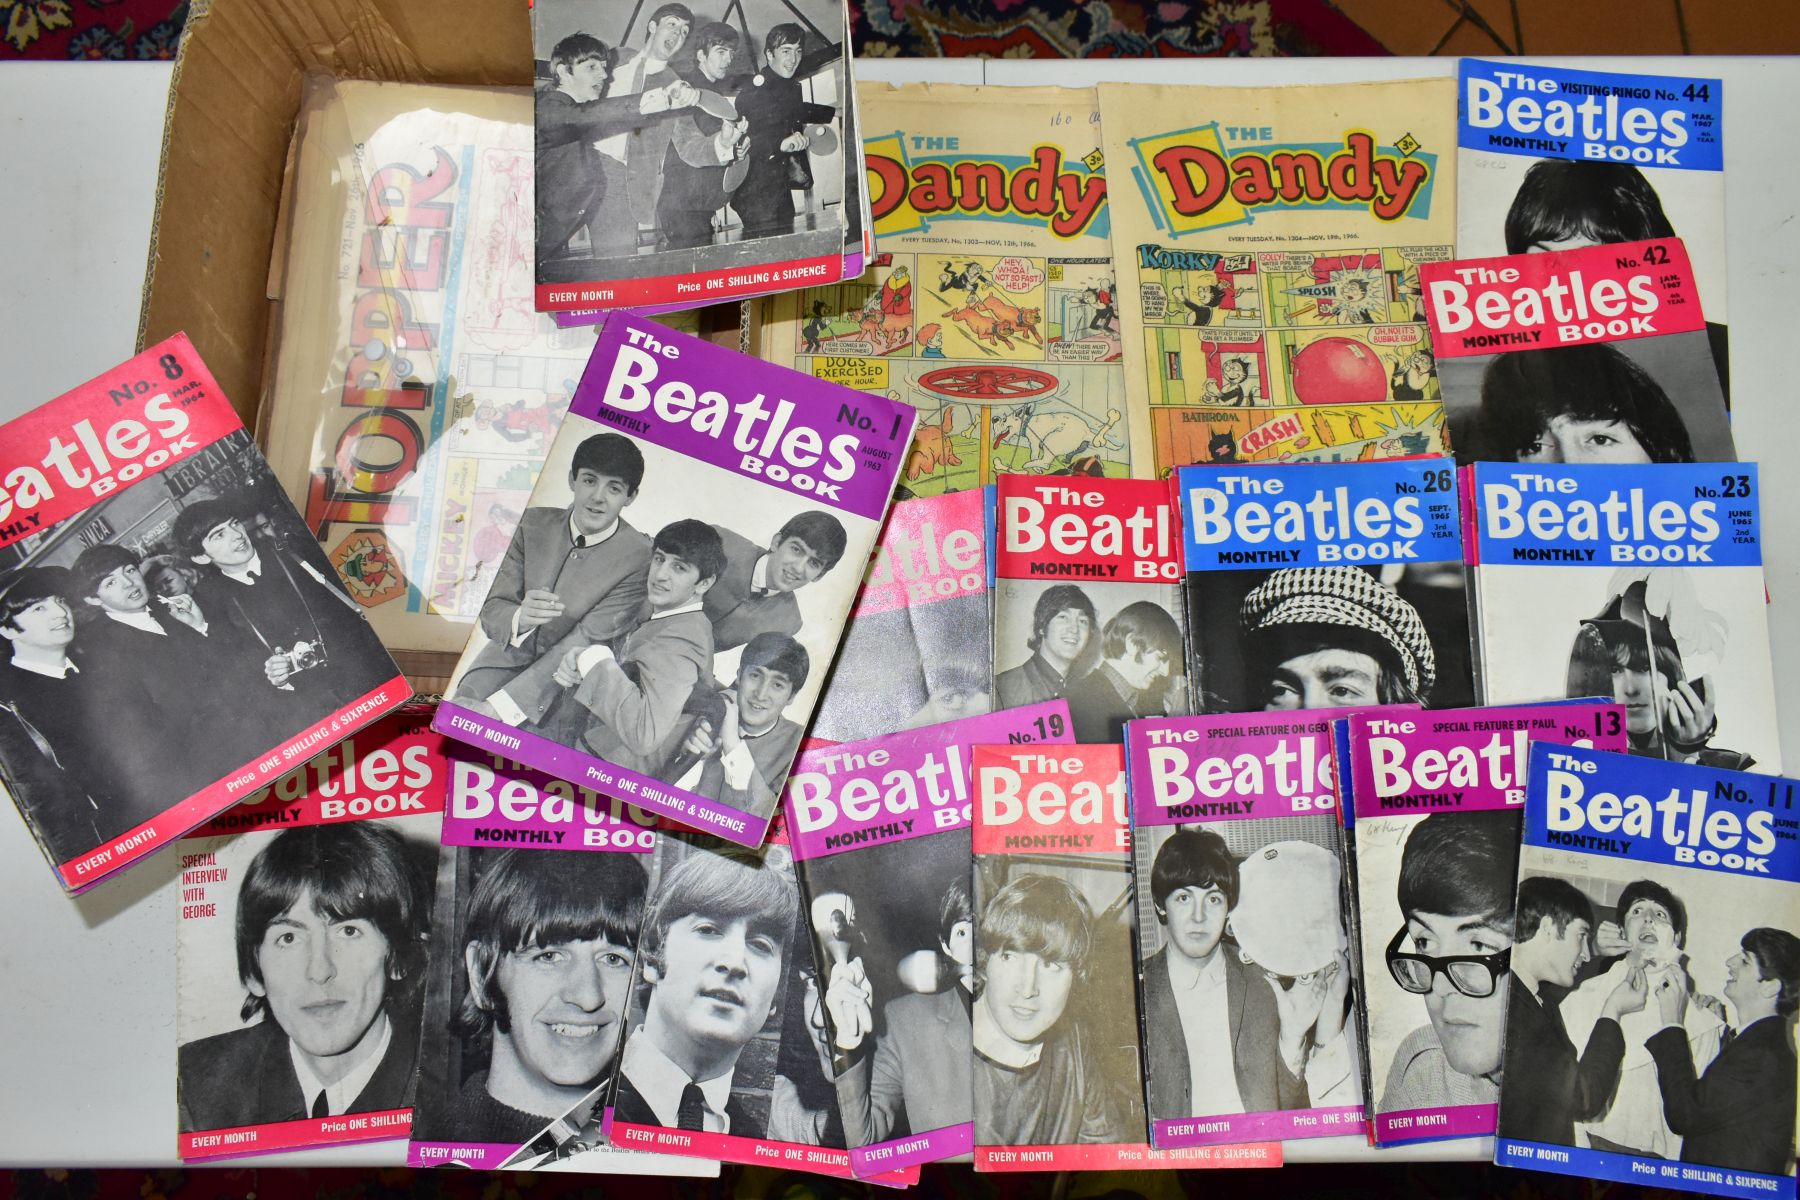 A QUANTITY OF THE BEATLES MONTHLY BOOK, to include No's 1, 2, 4-11, 13-19, 21-28, 32-34, 37-40, 42 &